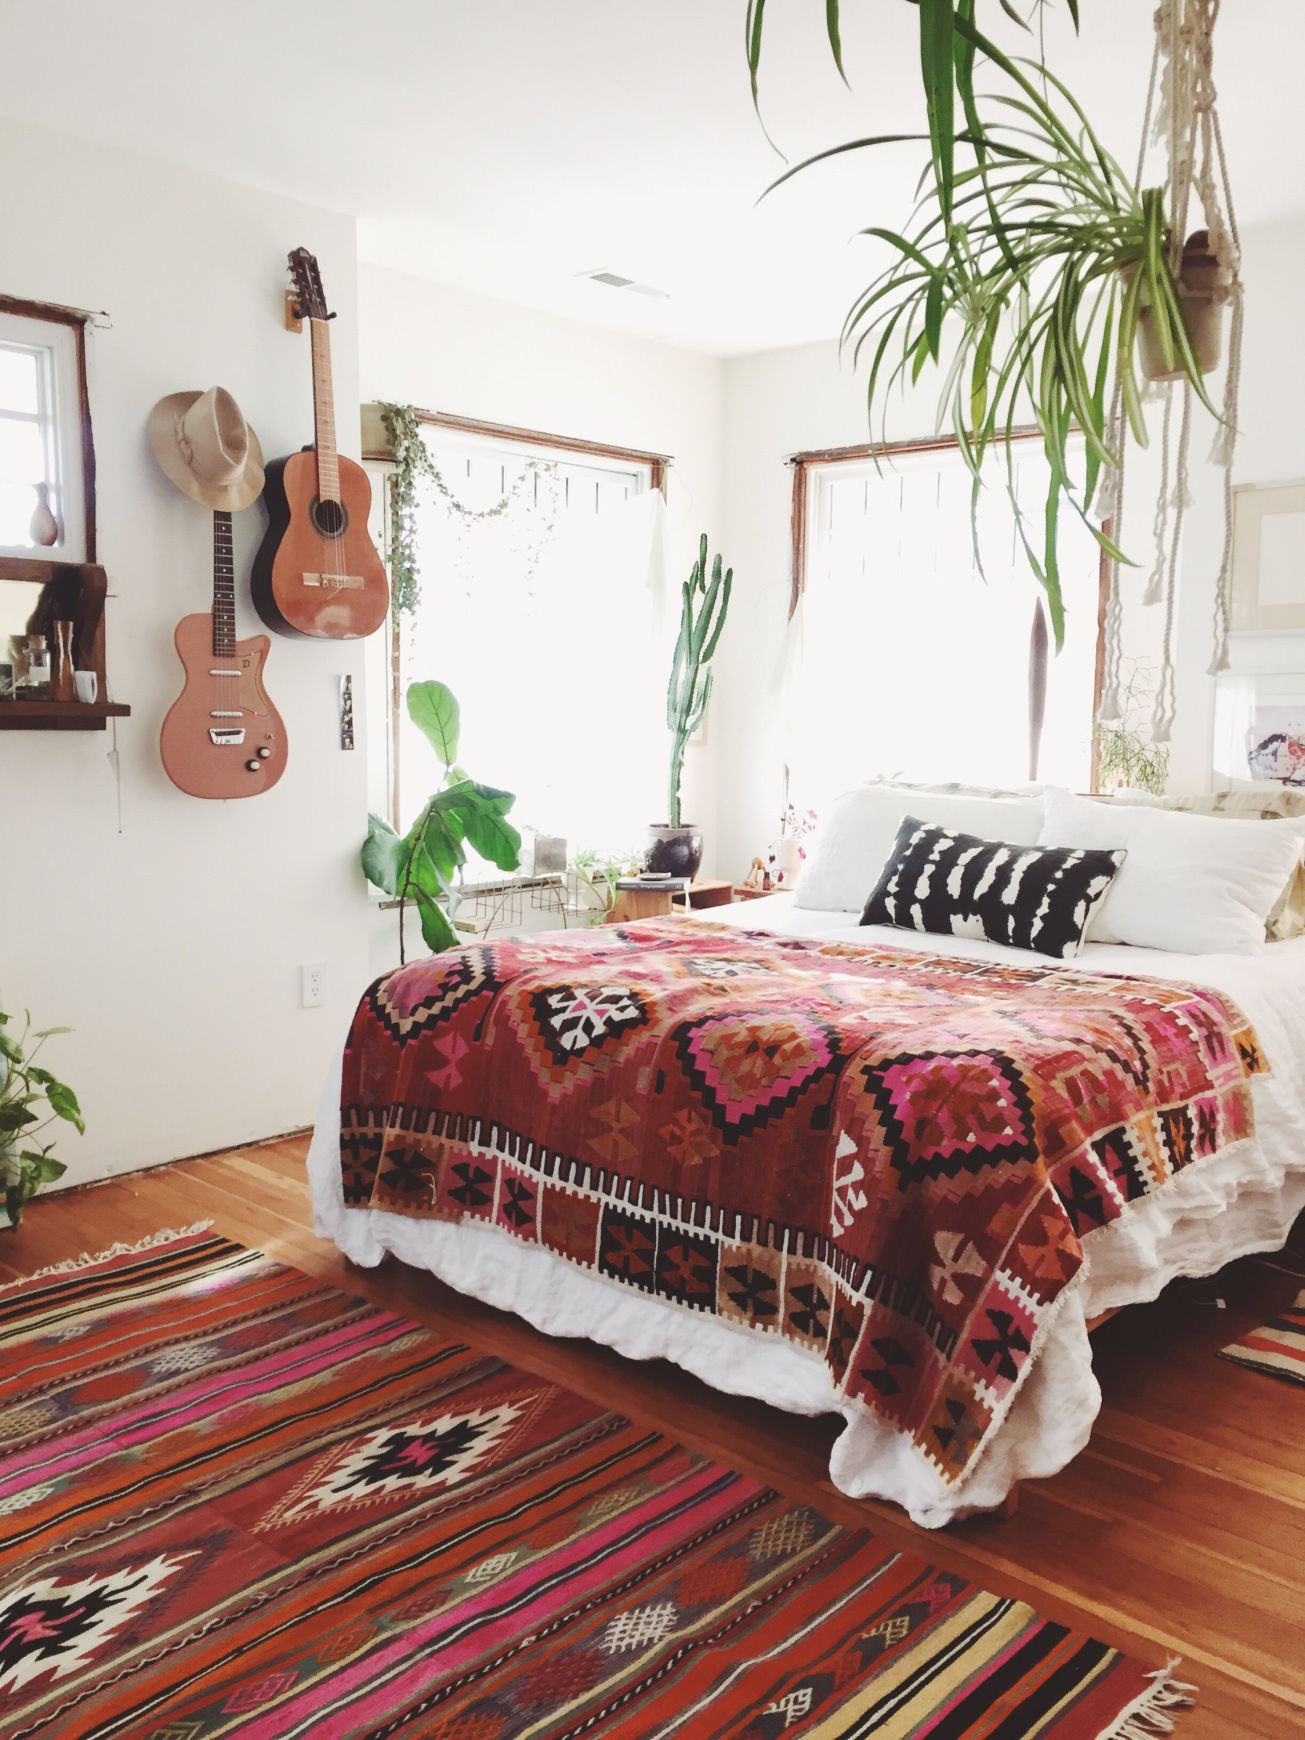 Charming 25 Bohemian Bedroom Decor Ideas That Will Make You Want To Redecorate ASAP  | @stylecaster